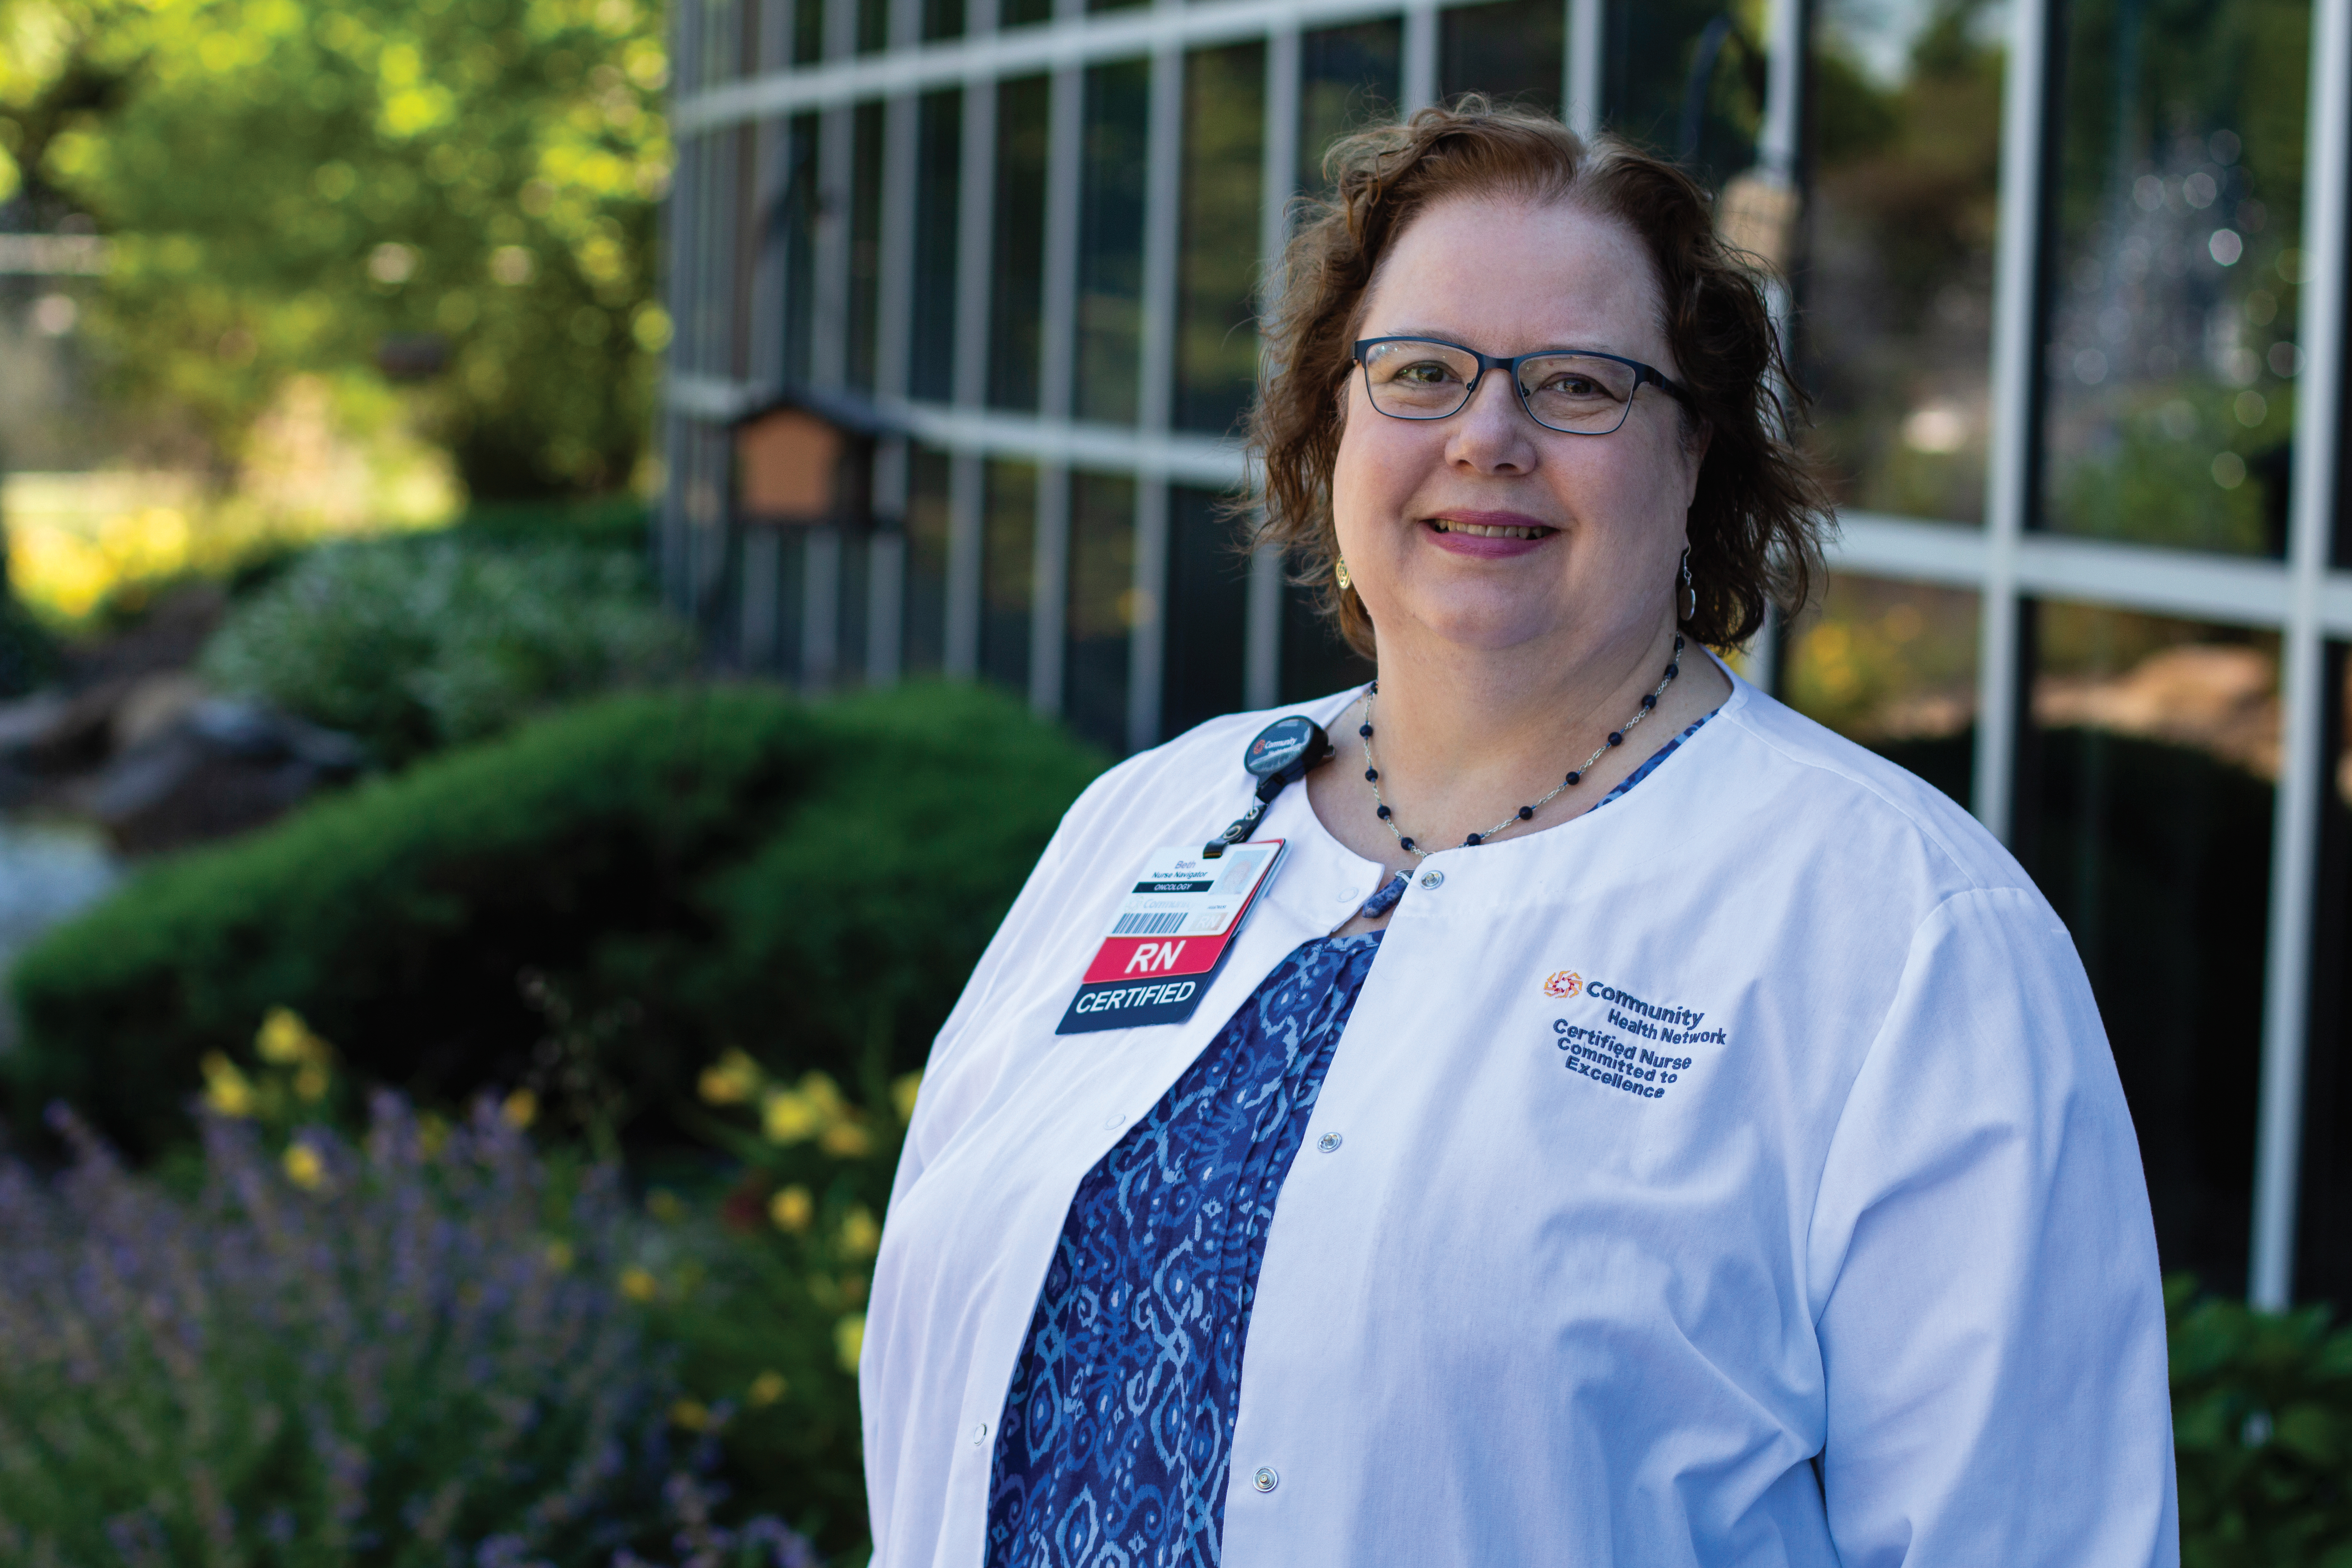 ONS member Beth Staker, BSN, RN, CBCN®, ONN-CG, a nurse navigator for Community Cancer Center South in Indianapolis, IN